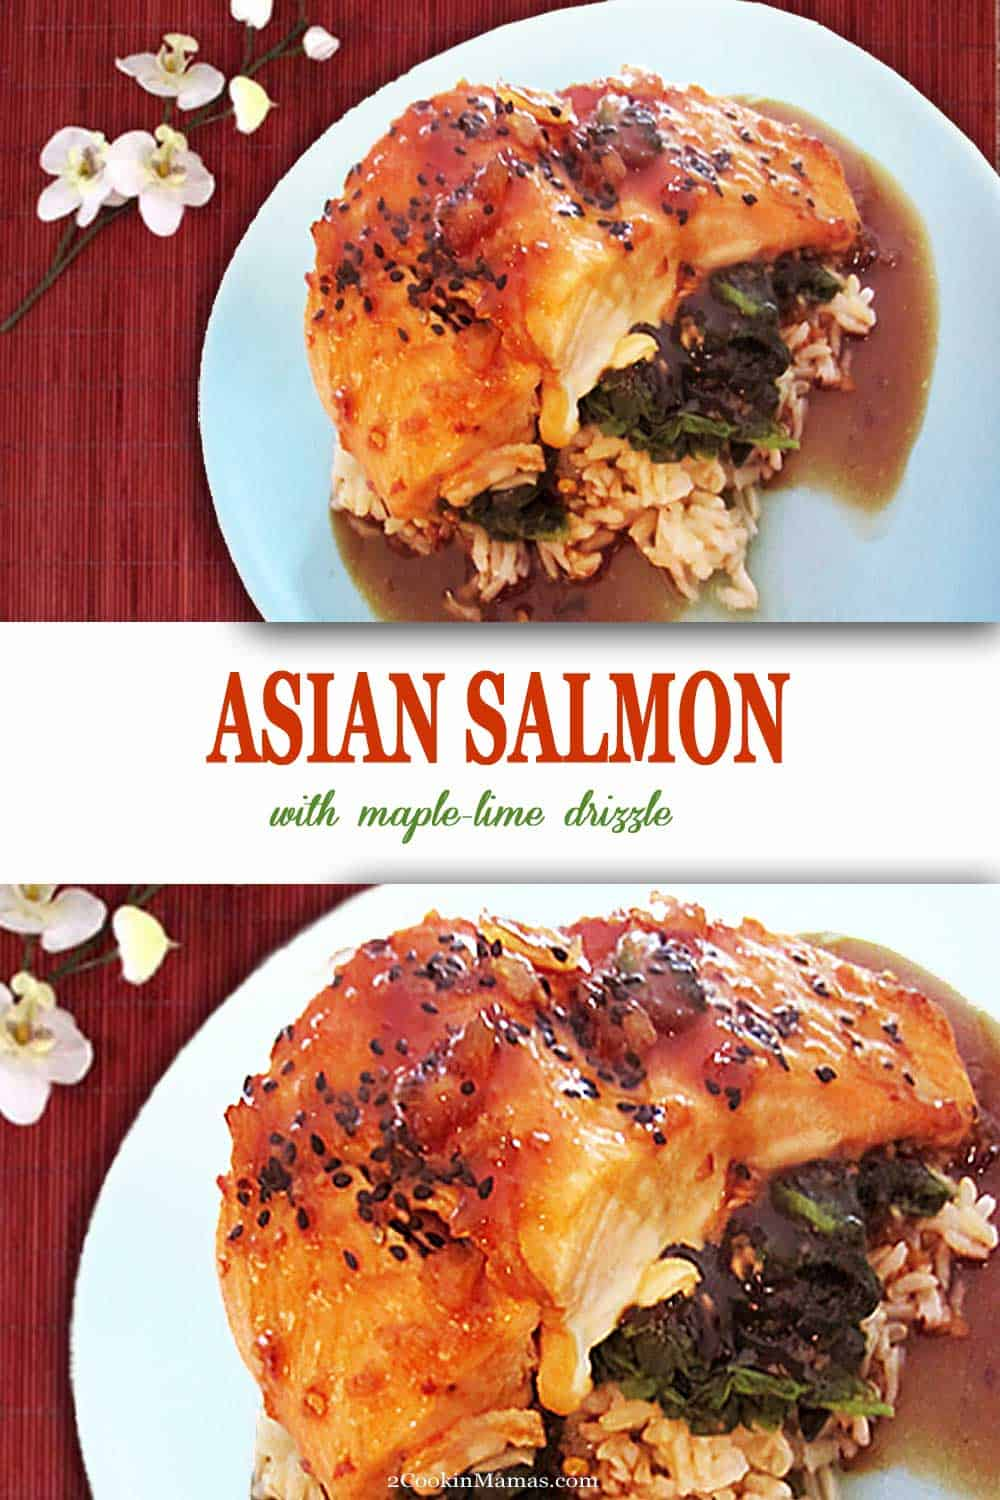 Impress with this easy baked salmon dish with an Asian flair. Served over spinach and rice, it\'s got everything you need for a healthy family dinner. #dinner #salmon #easy #recipe #maple